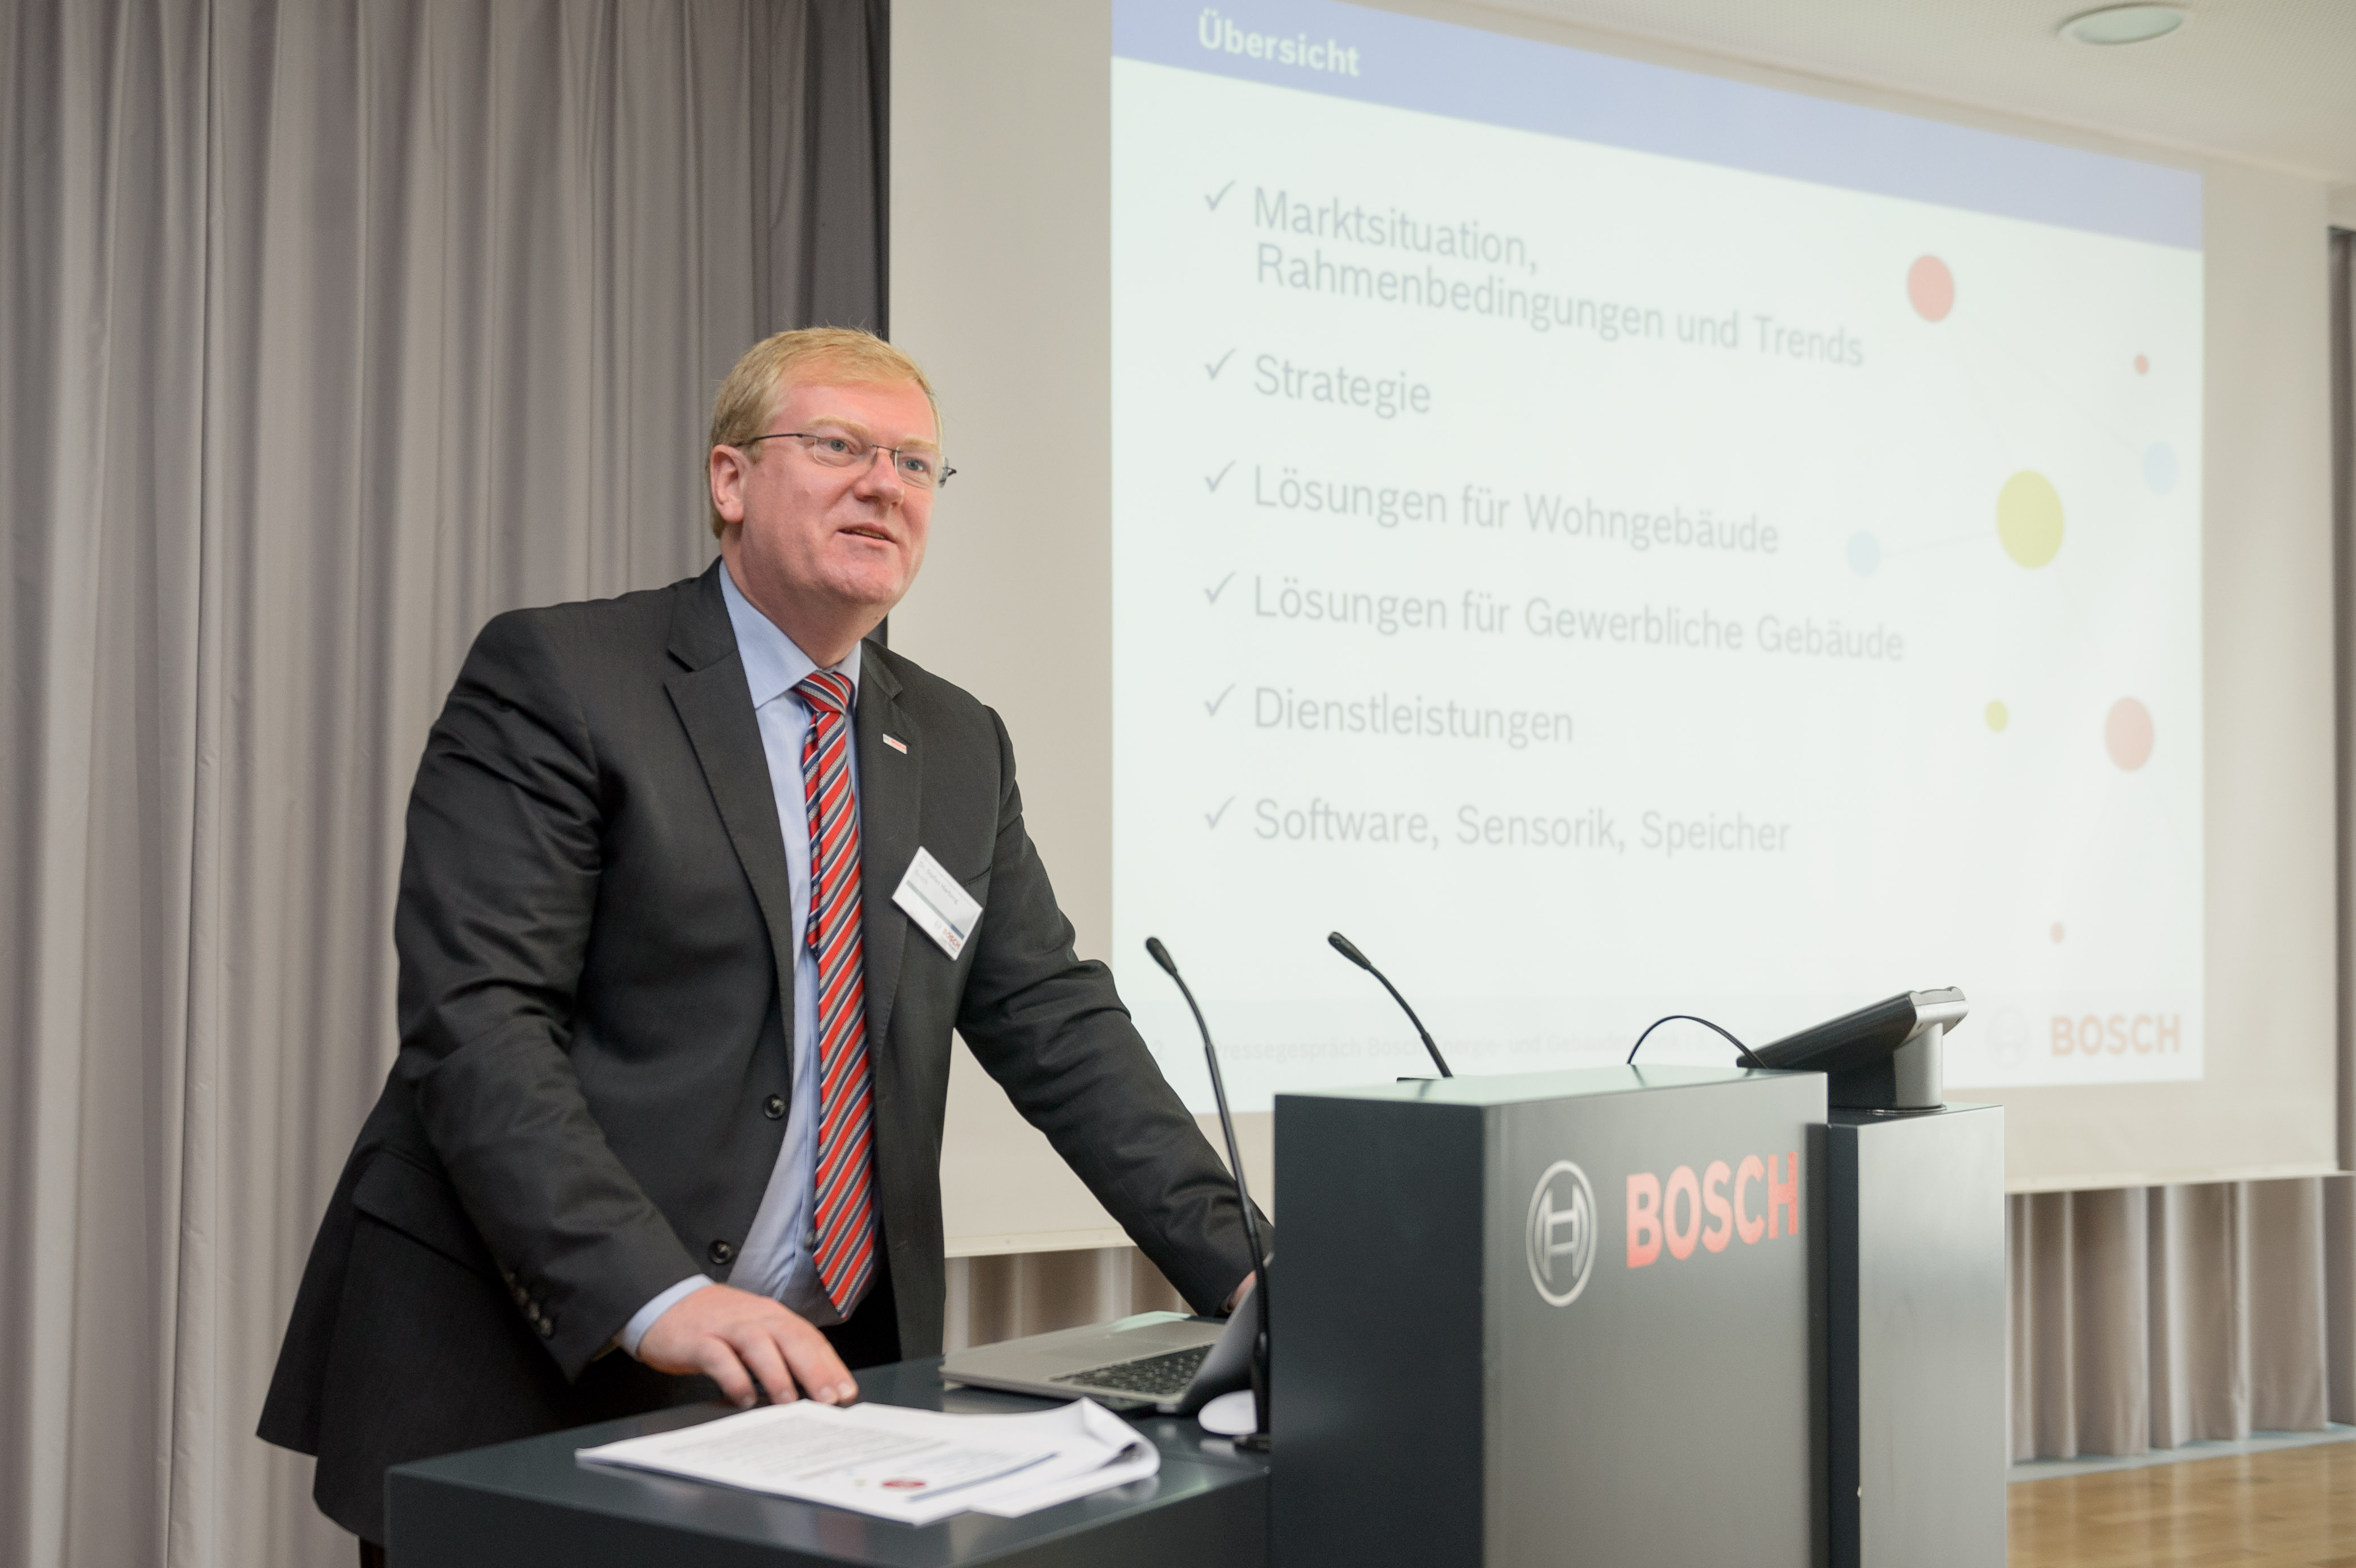 Press Briefing Bosch Energy and Building Technology on June 3, 2014 in Stuttgart (Germany)